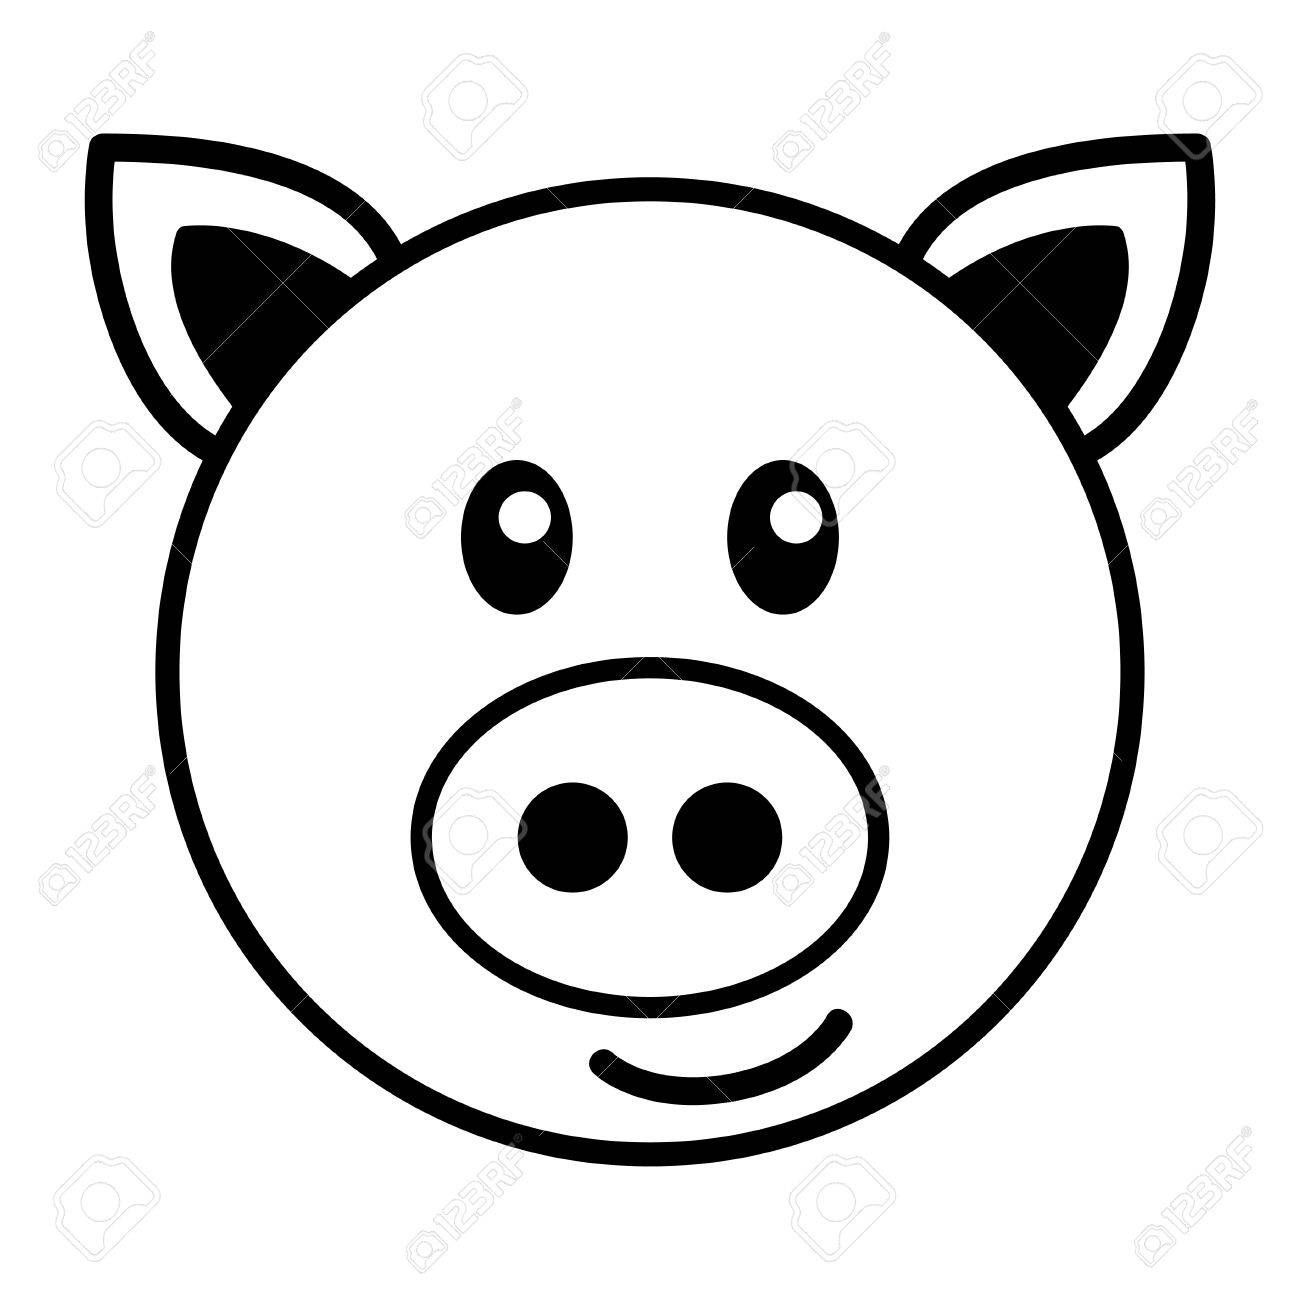 1300x1300 Simple Cartoon Of A Cute Pig Royalty Free Cliparts Vectors And Simple Cartoon Cute Pigs Easy Drawings